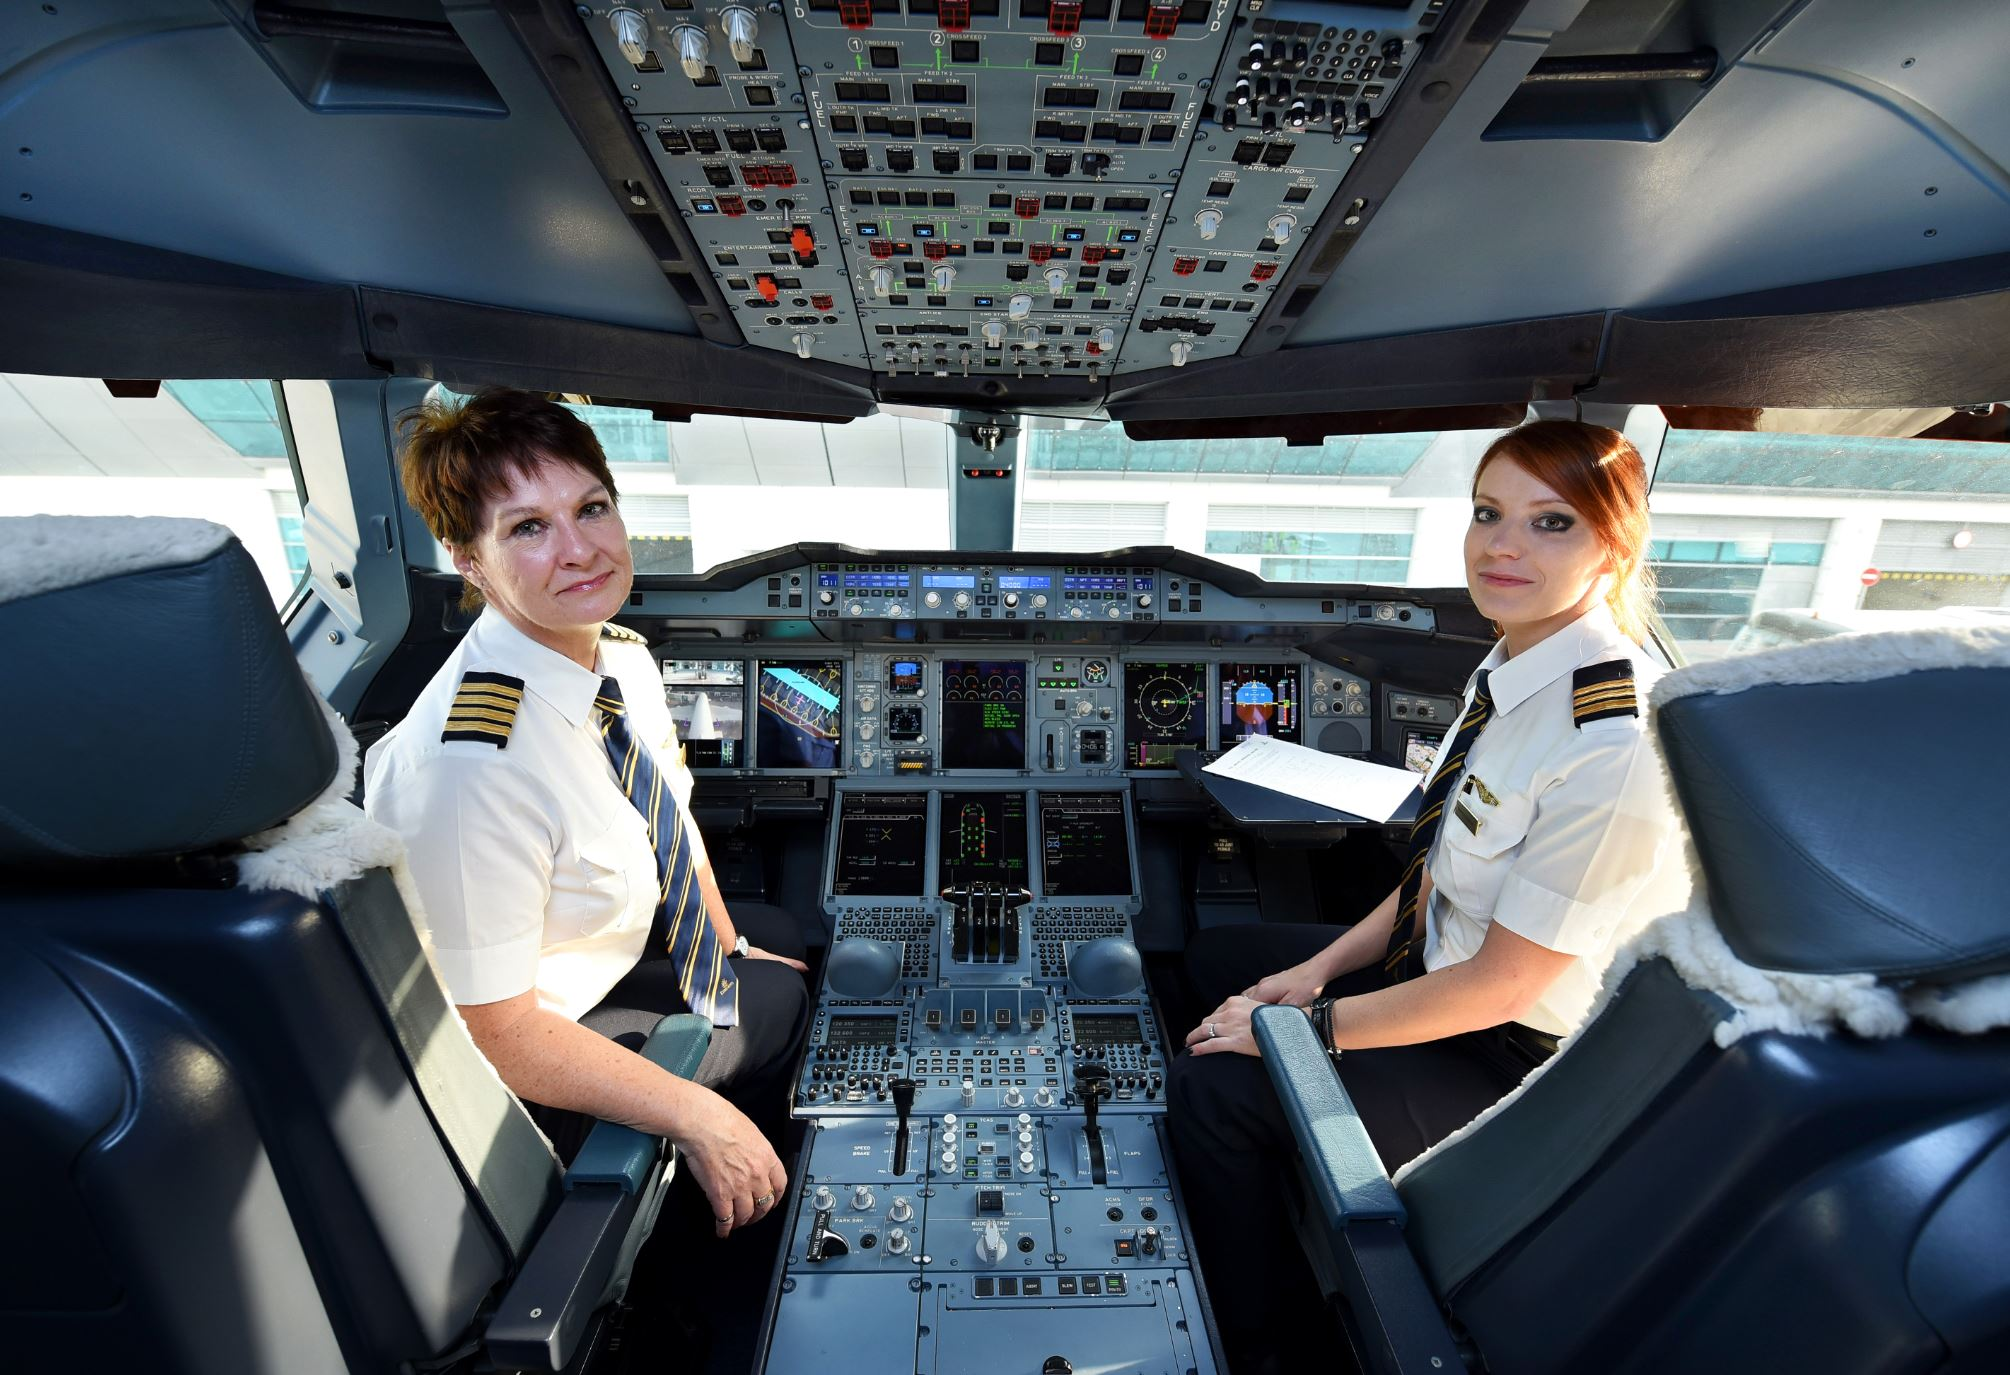 Female pilots: Aviation industry lagging in 'pilot gender equality